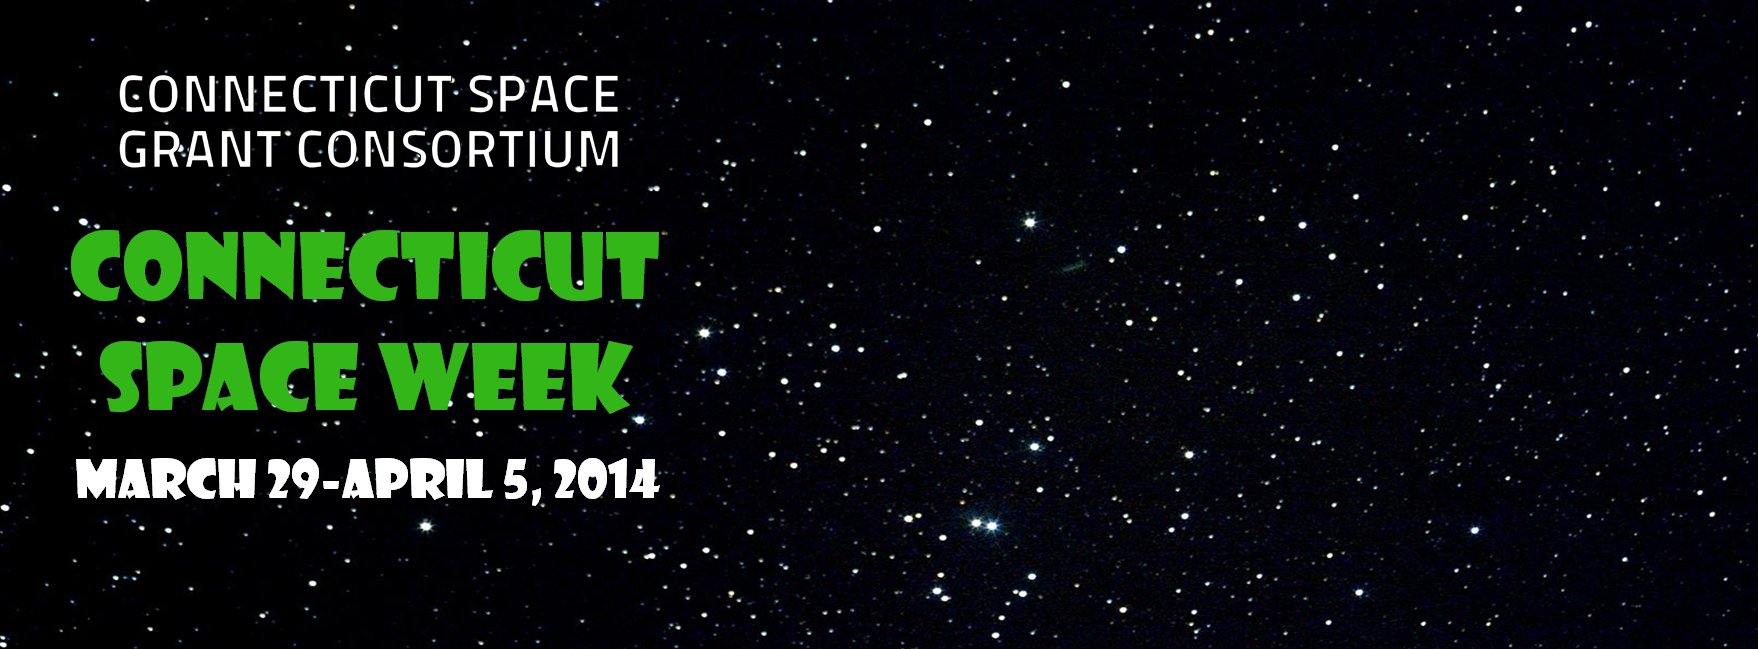 CONNECTICUT SPACE WEEK 2014!